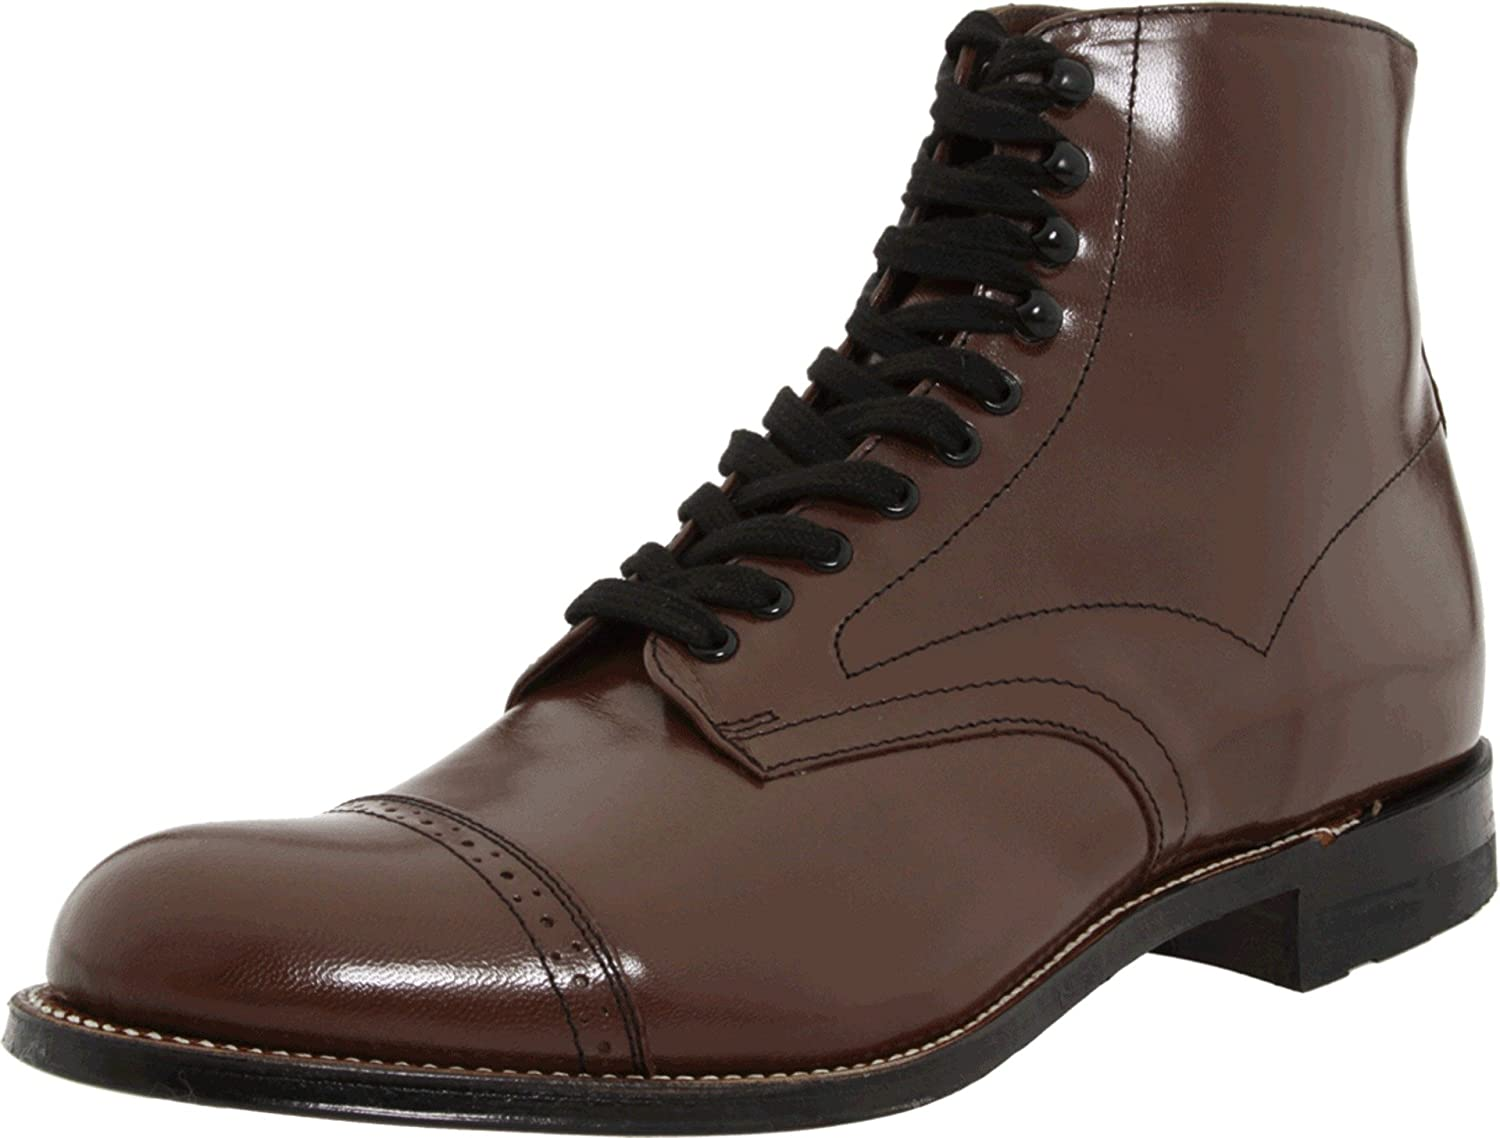 Stacy Adams Men's Victorian Boots and Shoes UK Stacy Adams Mens Madison Cap Toe Boot �96.11 AT vintagedancer.com